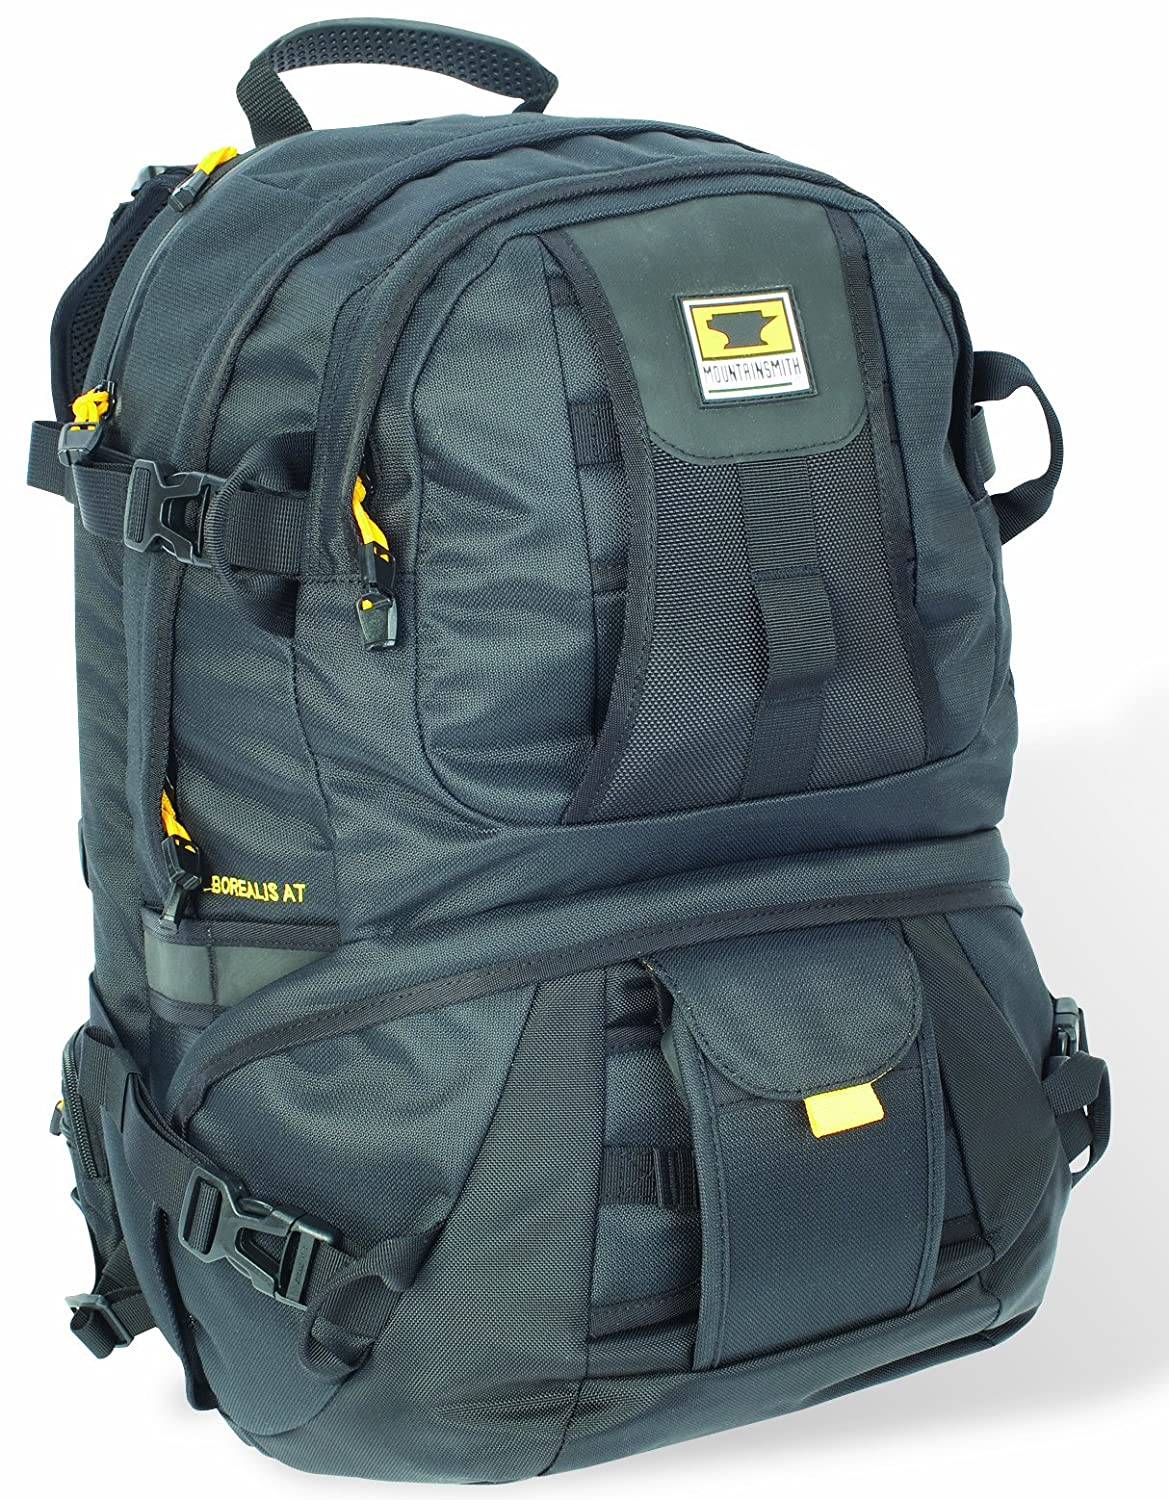 Mountainsmith Borealis AT Recycled Camera Backpack